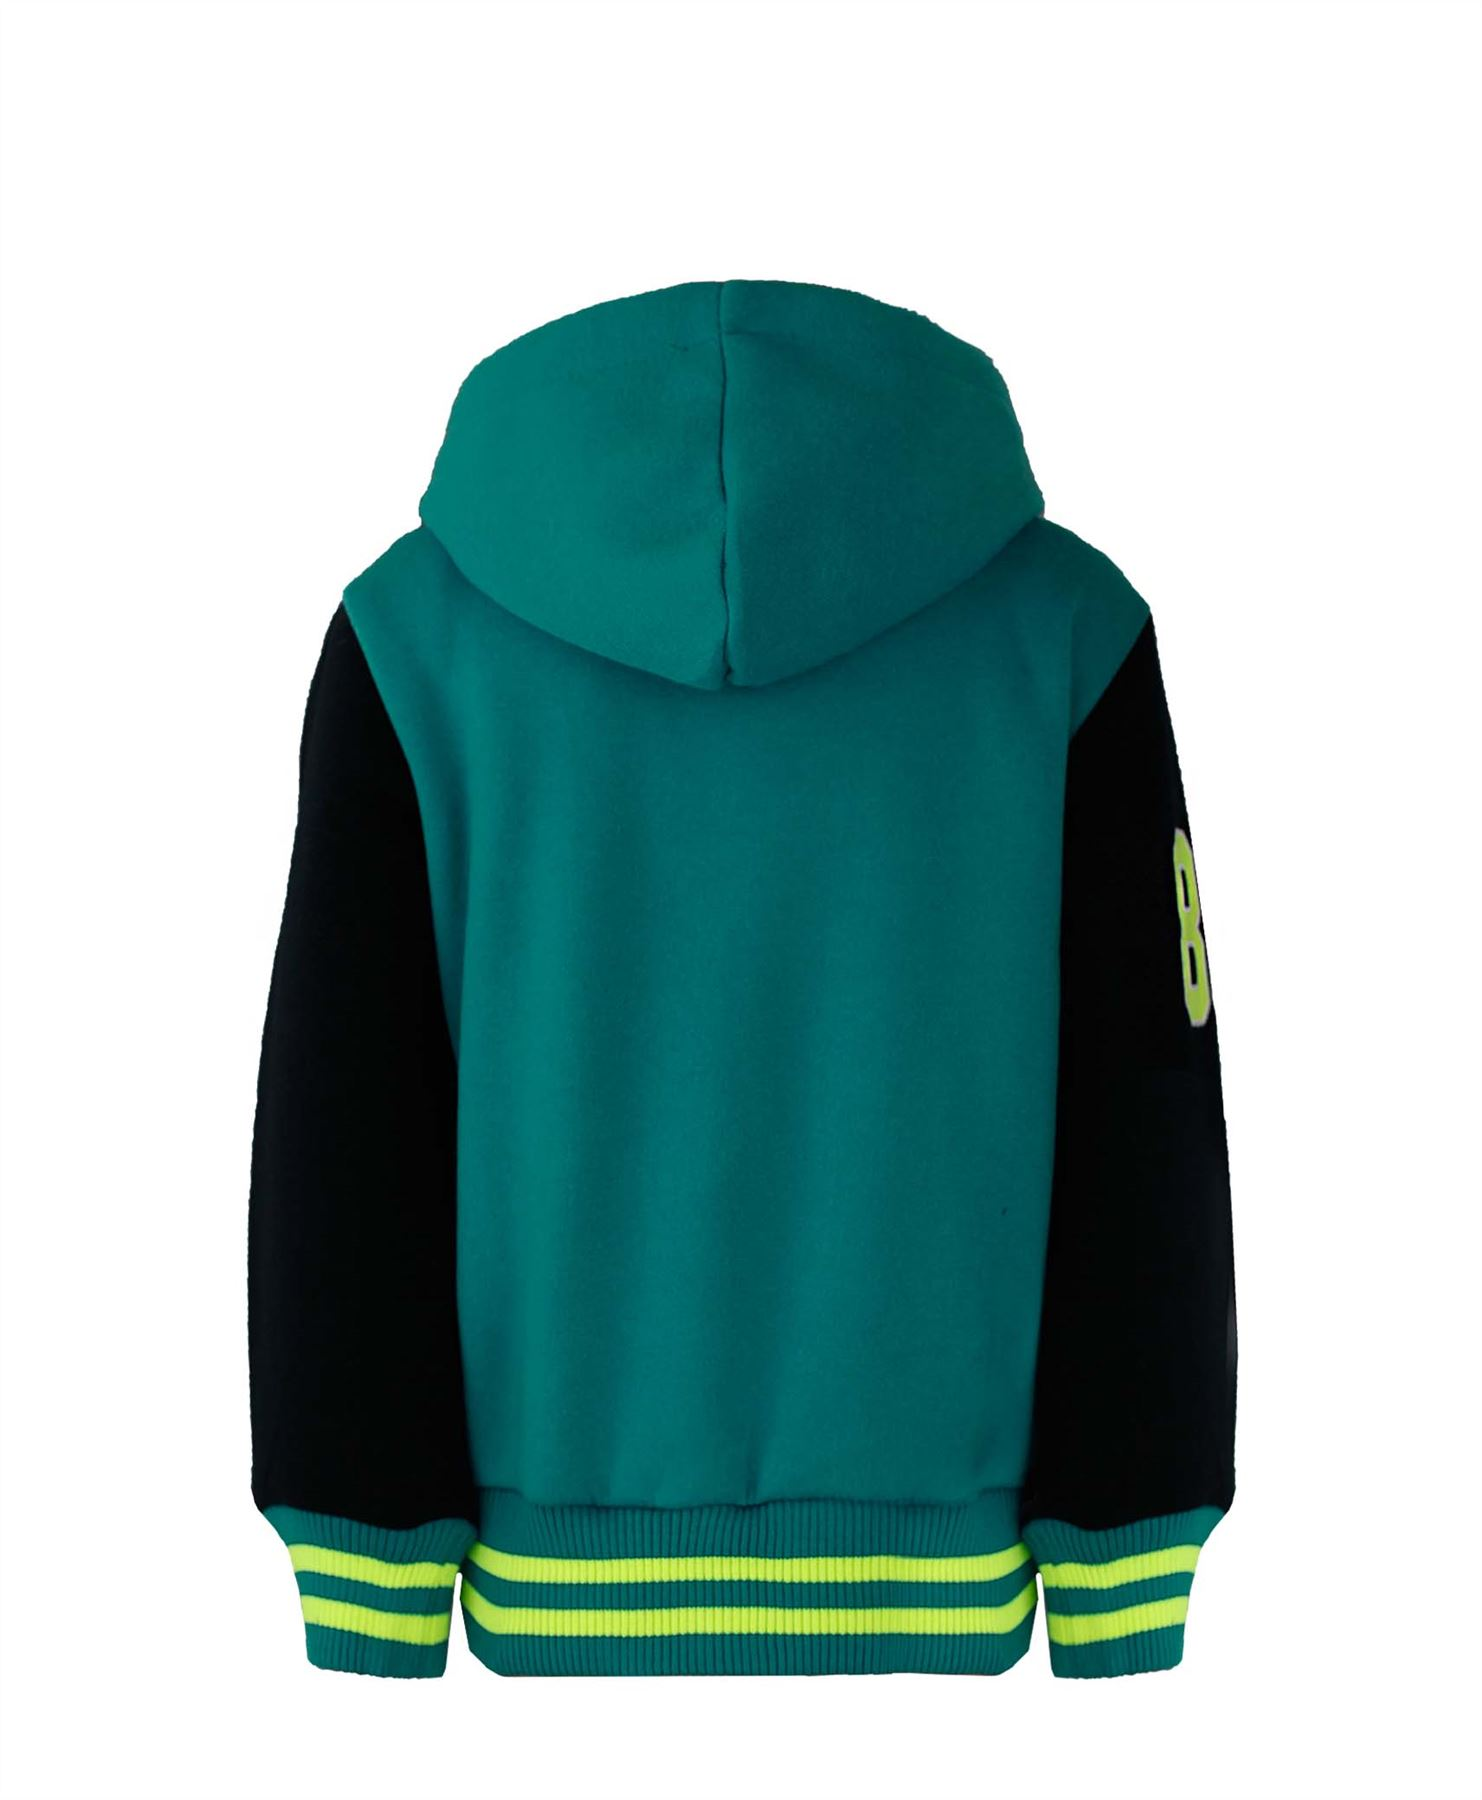 KIDS-SPORTS-NEW-YORK-FASHION-VARSITY-JACKET-GIRLS-BOYS-BASEBALL-HOODED-TOP-1-14Y